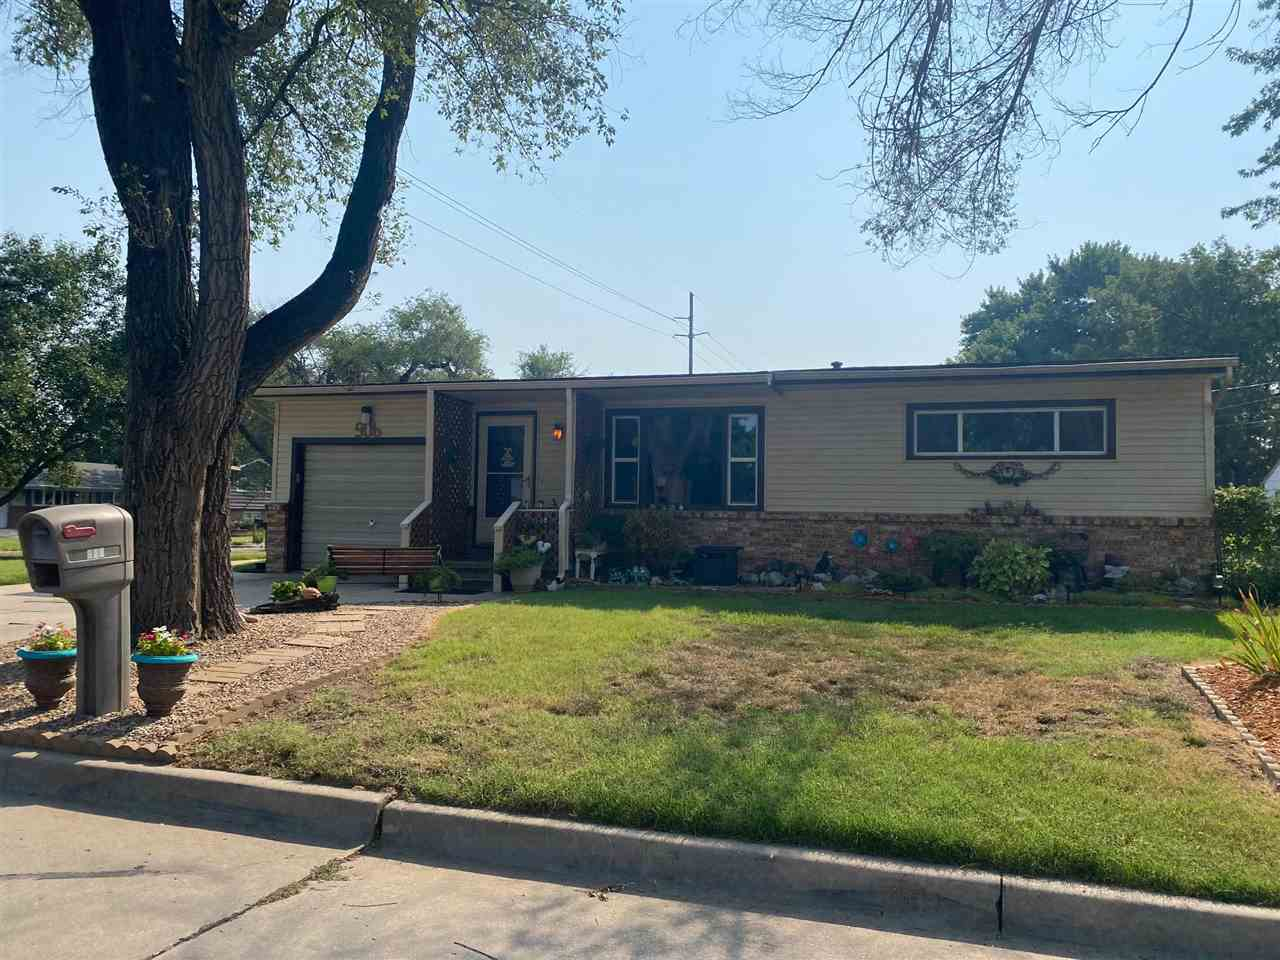 Don't miss this immaculate 2 bedroom home in a beautiful neighborhood. This home has like-new wood f